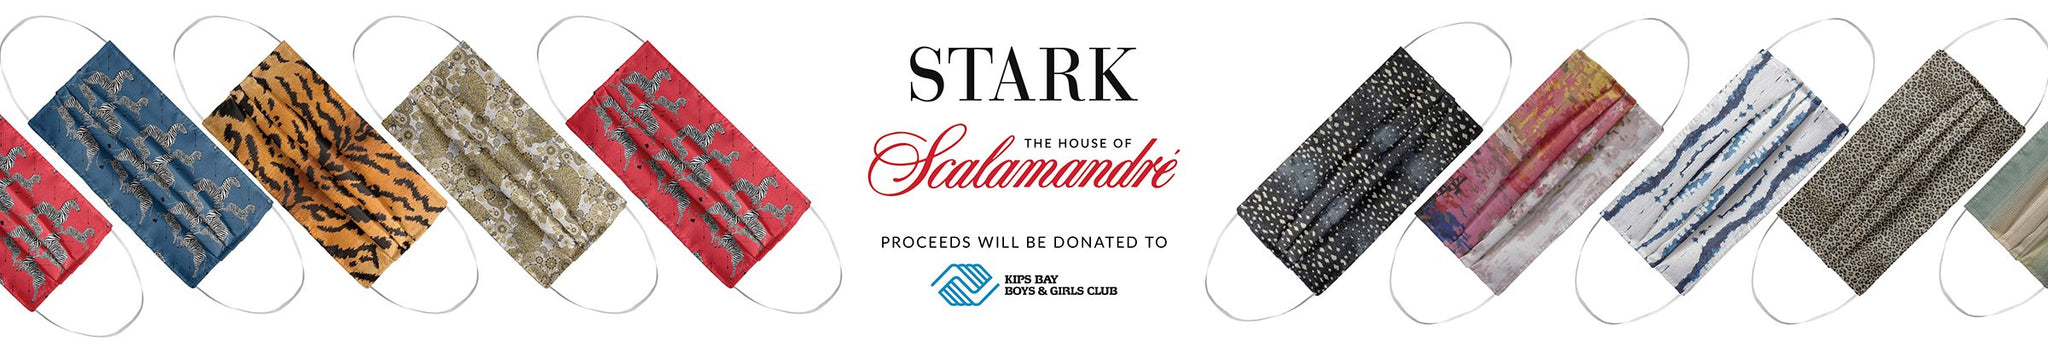 STARK & The House of Scalamandré